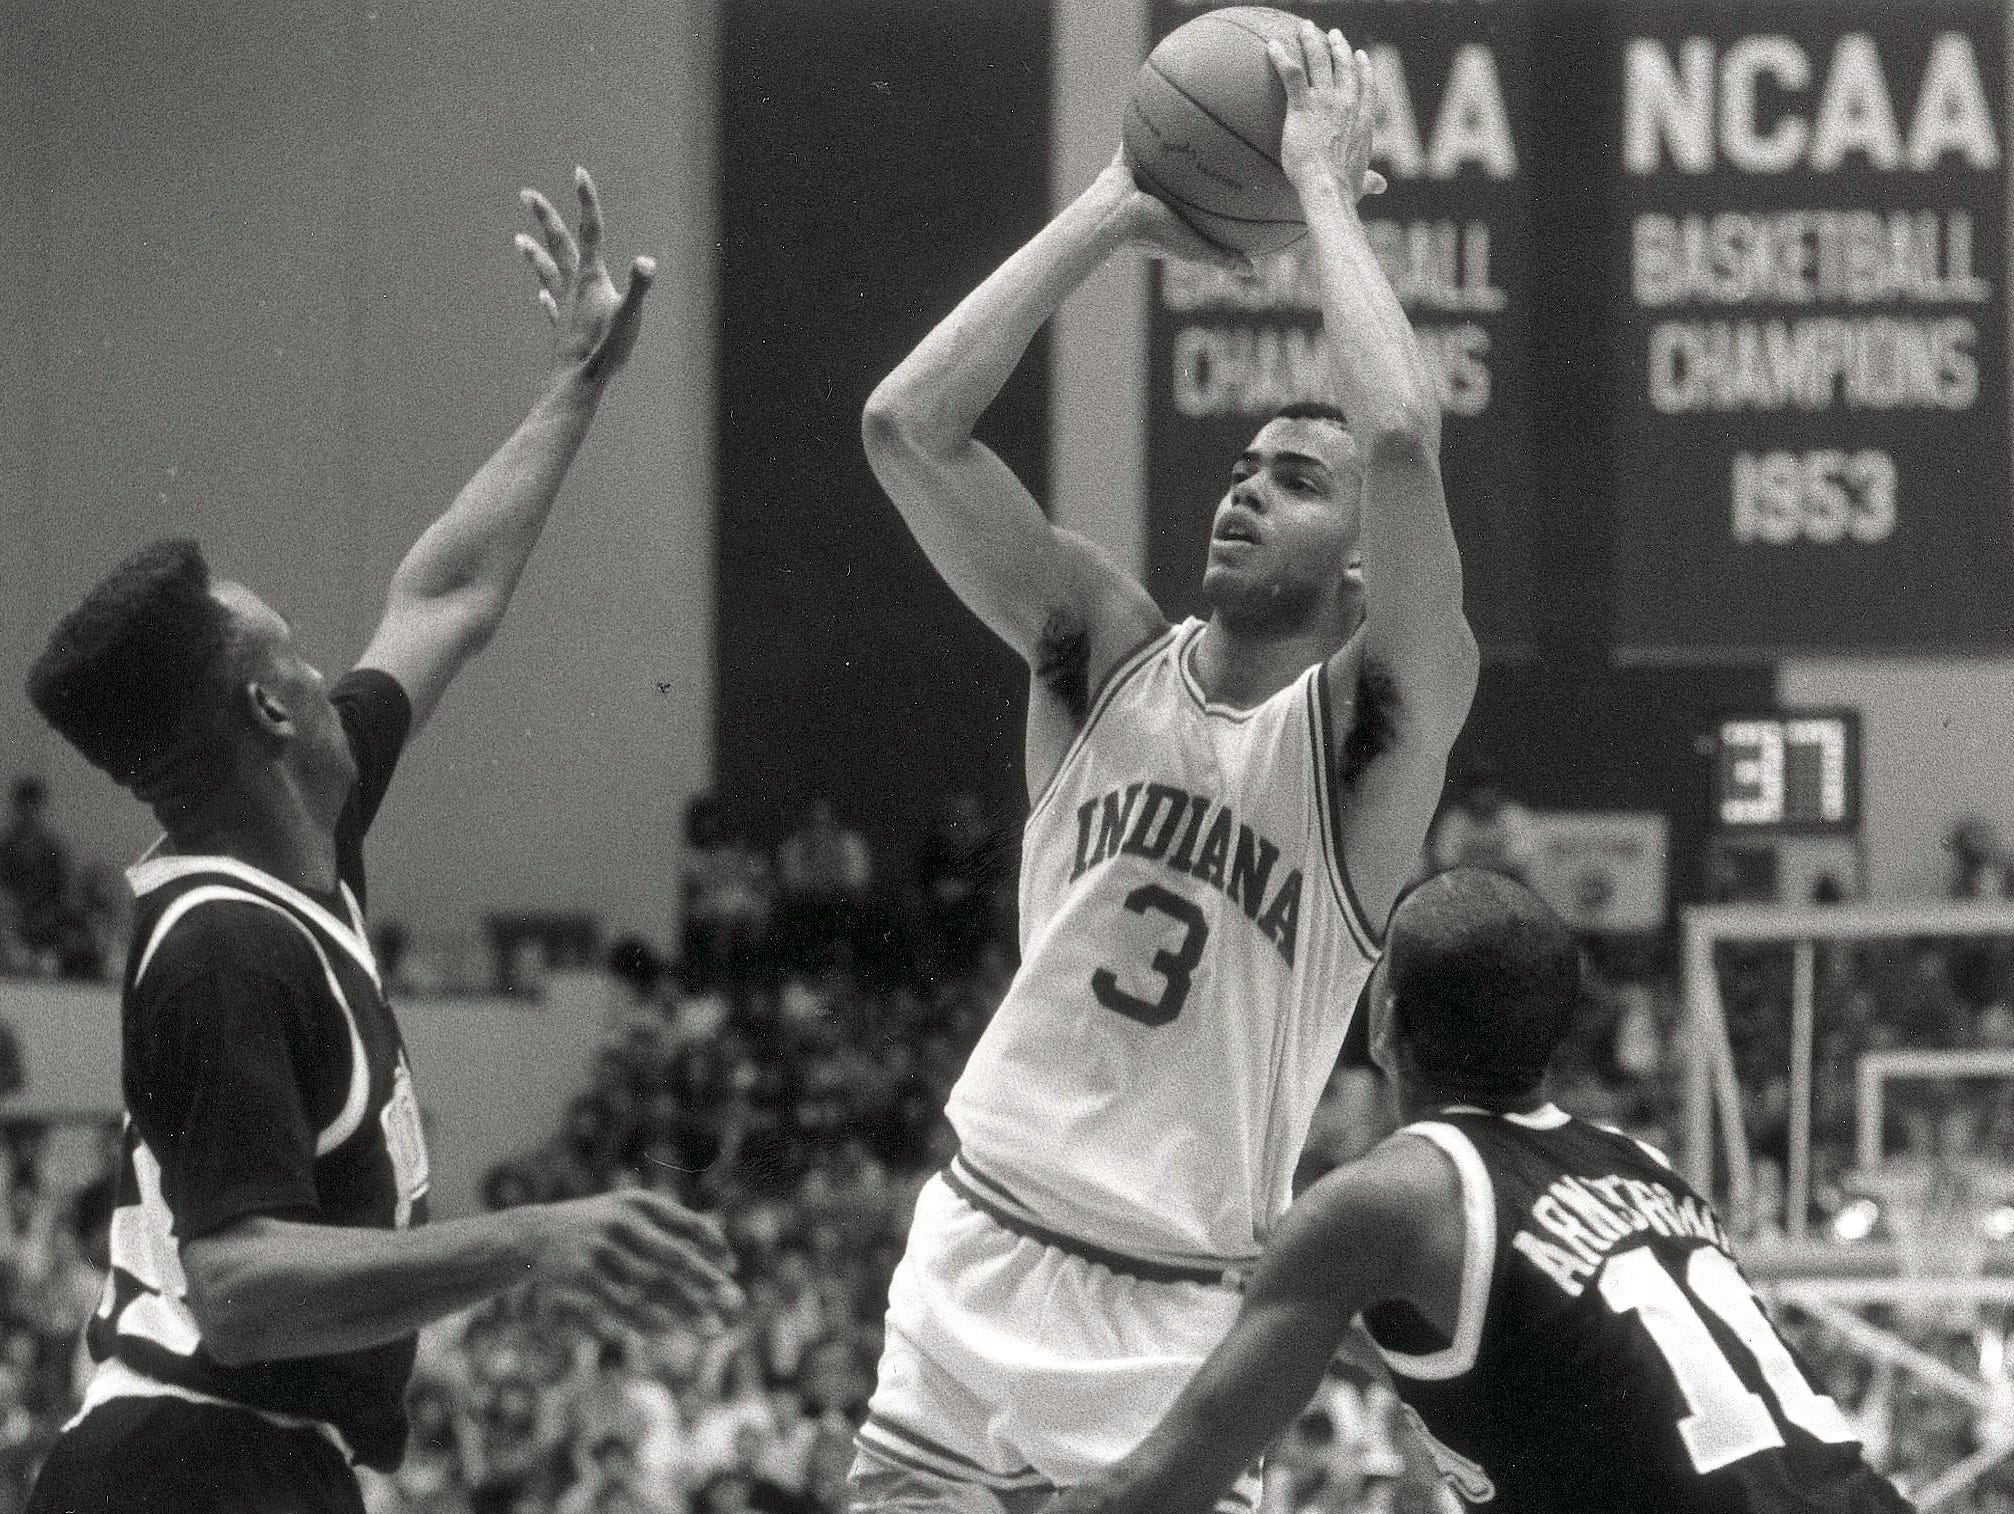 Jay Edwards gets a shot and a foul as he is guarded by Iowa's James Moses and B.J. Armstrong on Jan. 30, 1989. Edwards was the Big Ten's top freshman one season and its top player the next.